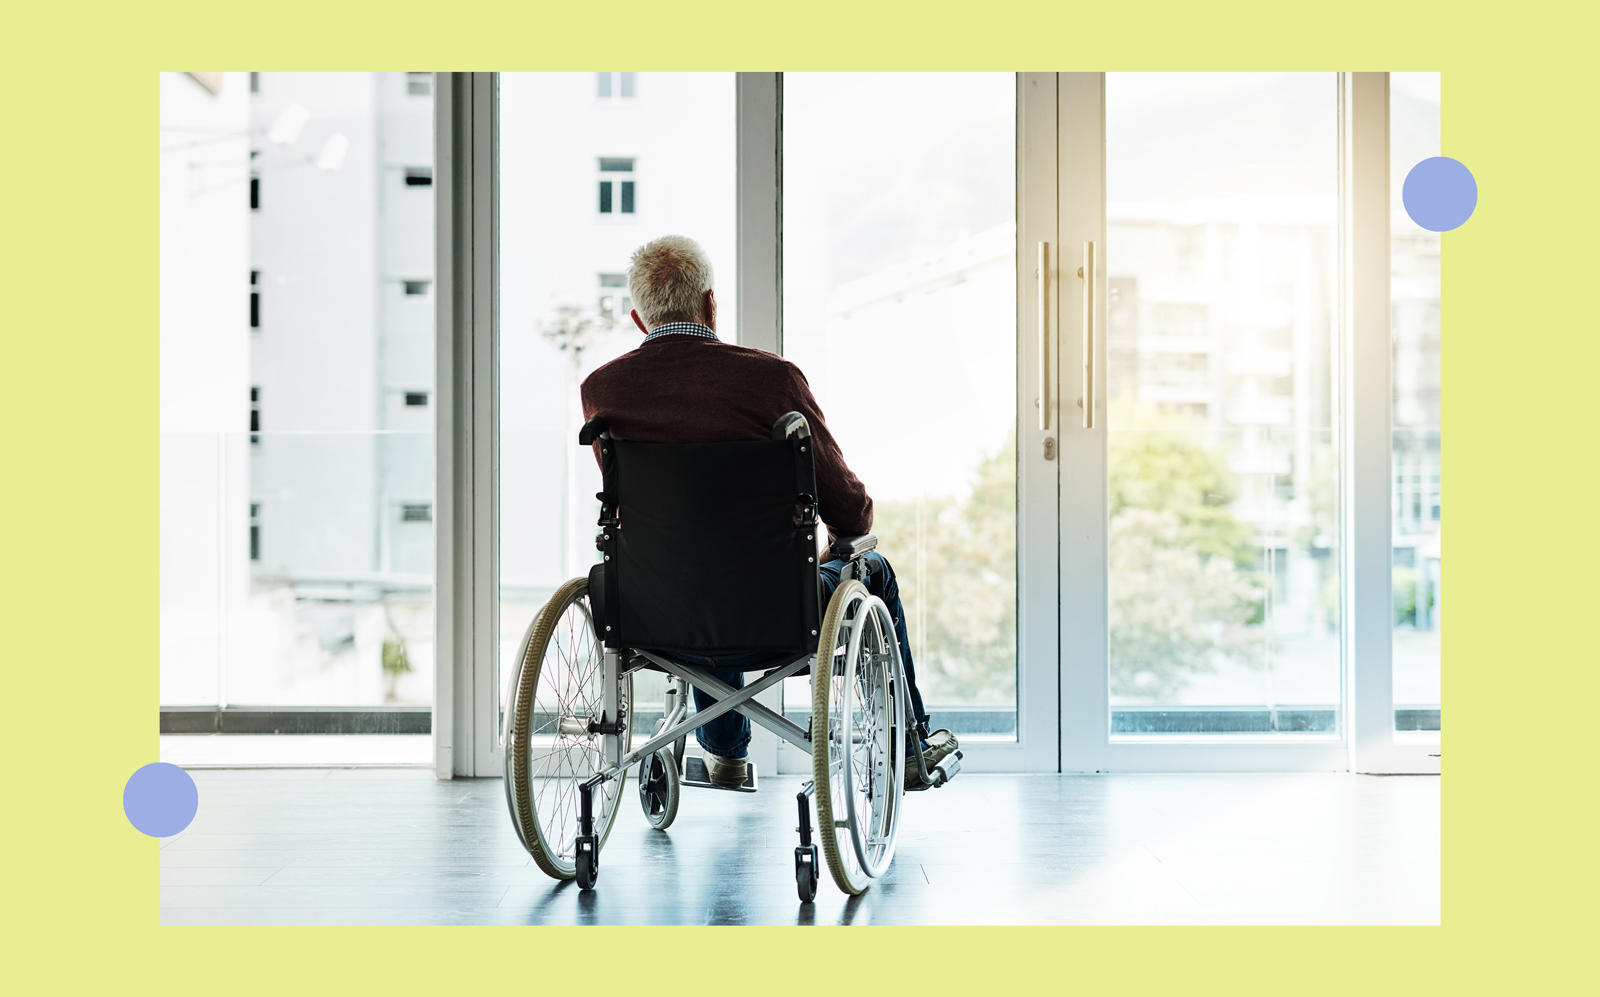 Investors are still bullish on senior housing, despite headline struggles in nursing care facilities throughout the pandemic. (Getty)